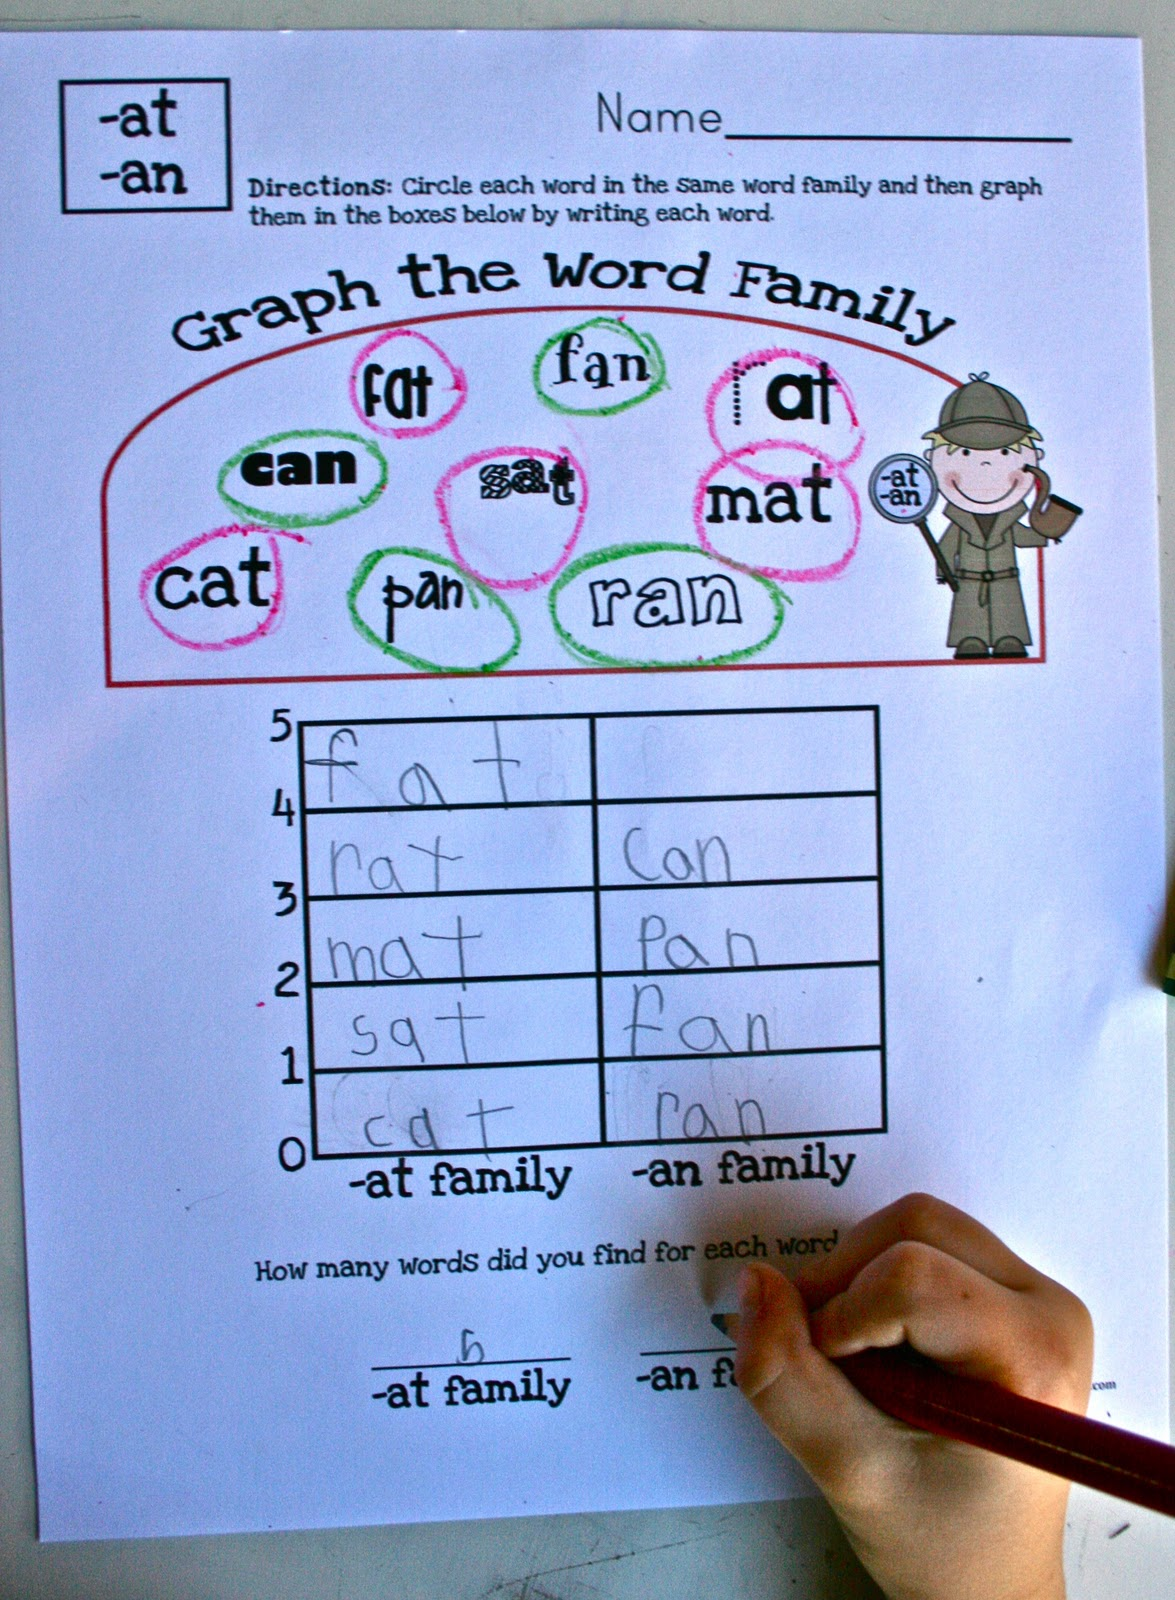 New Word Family Graphing